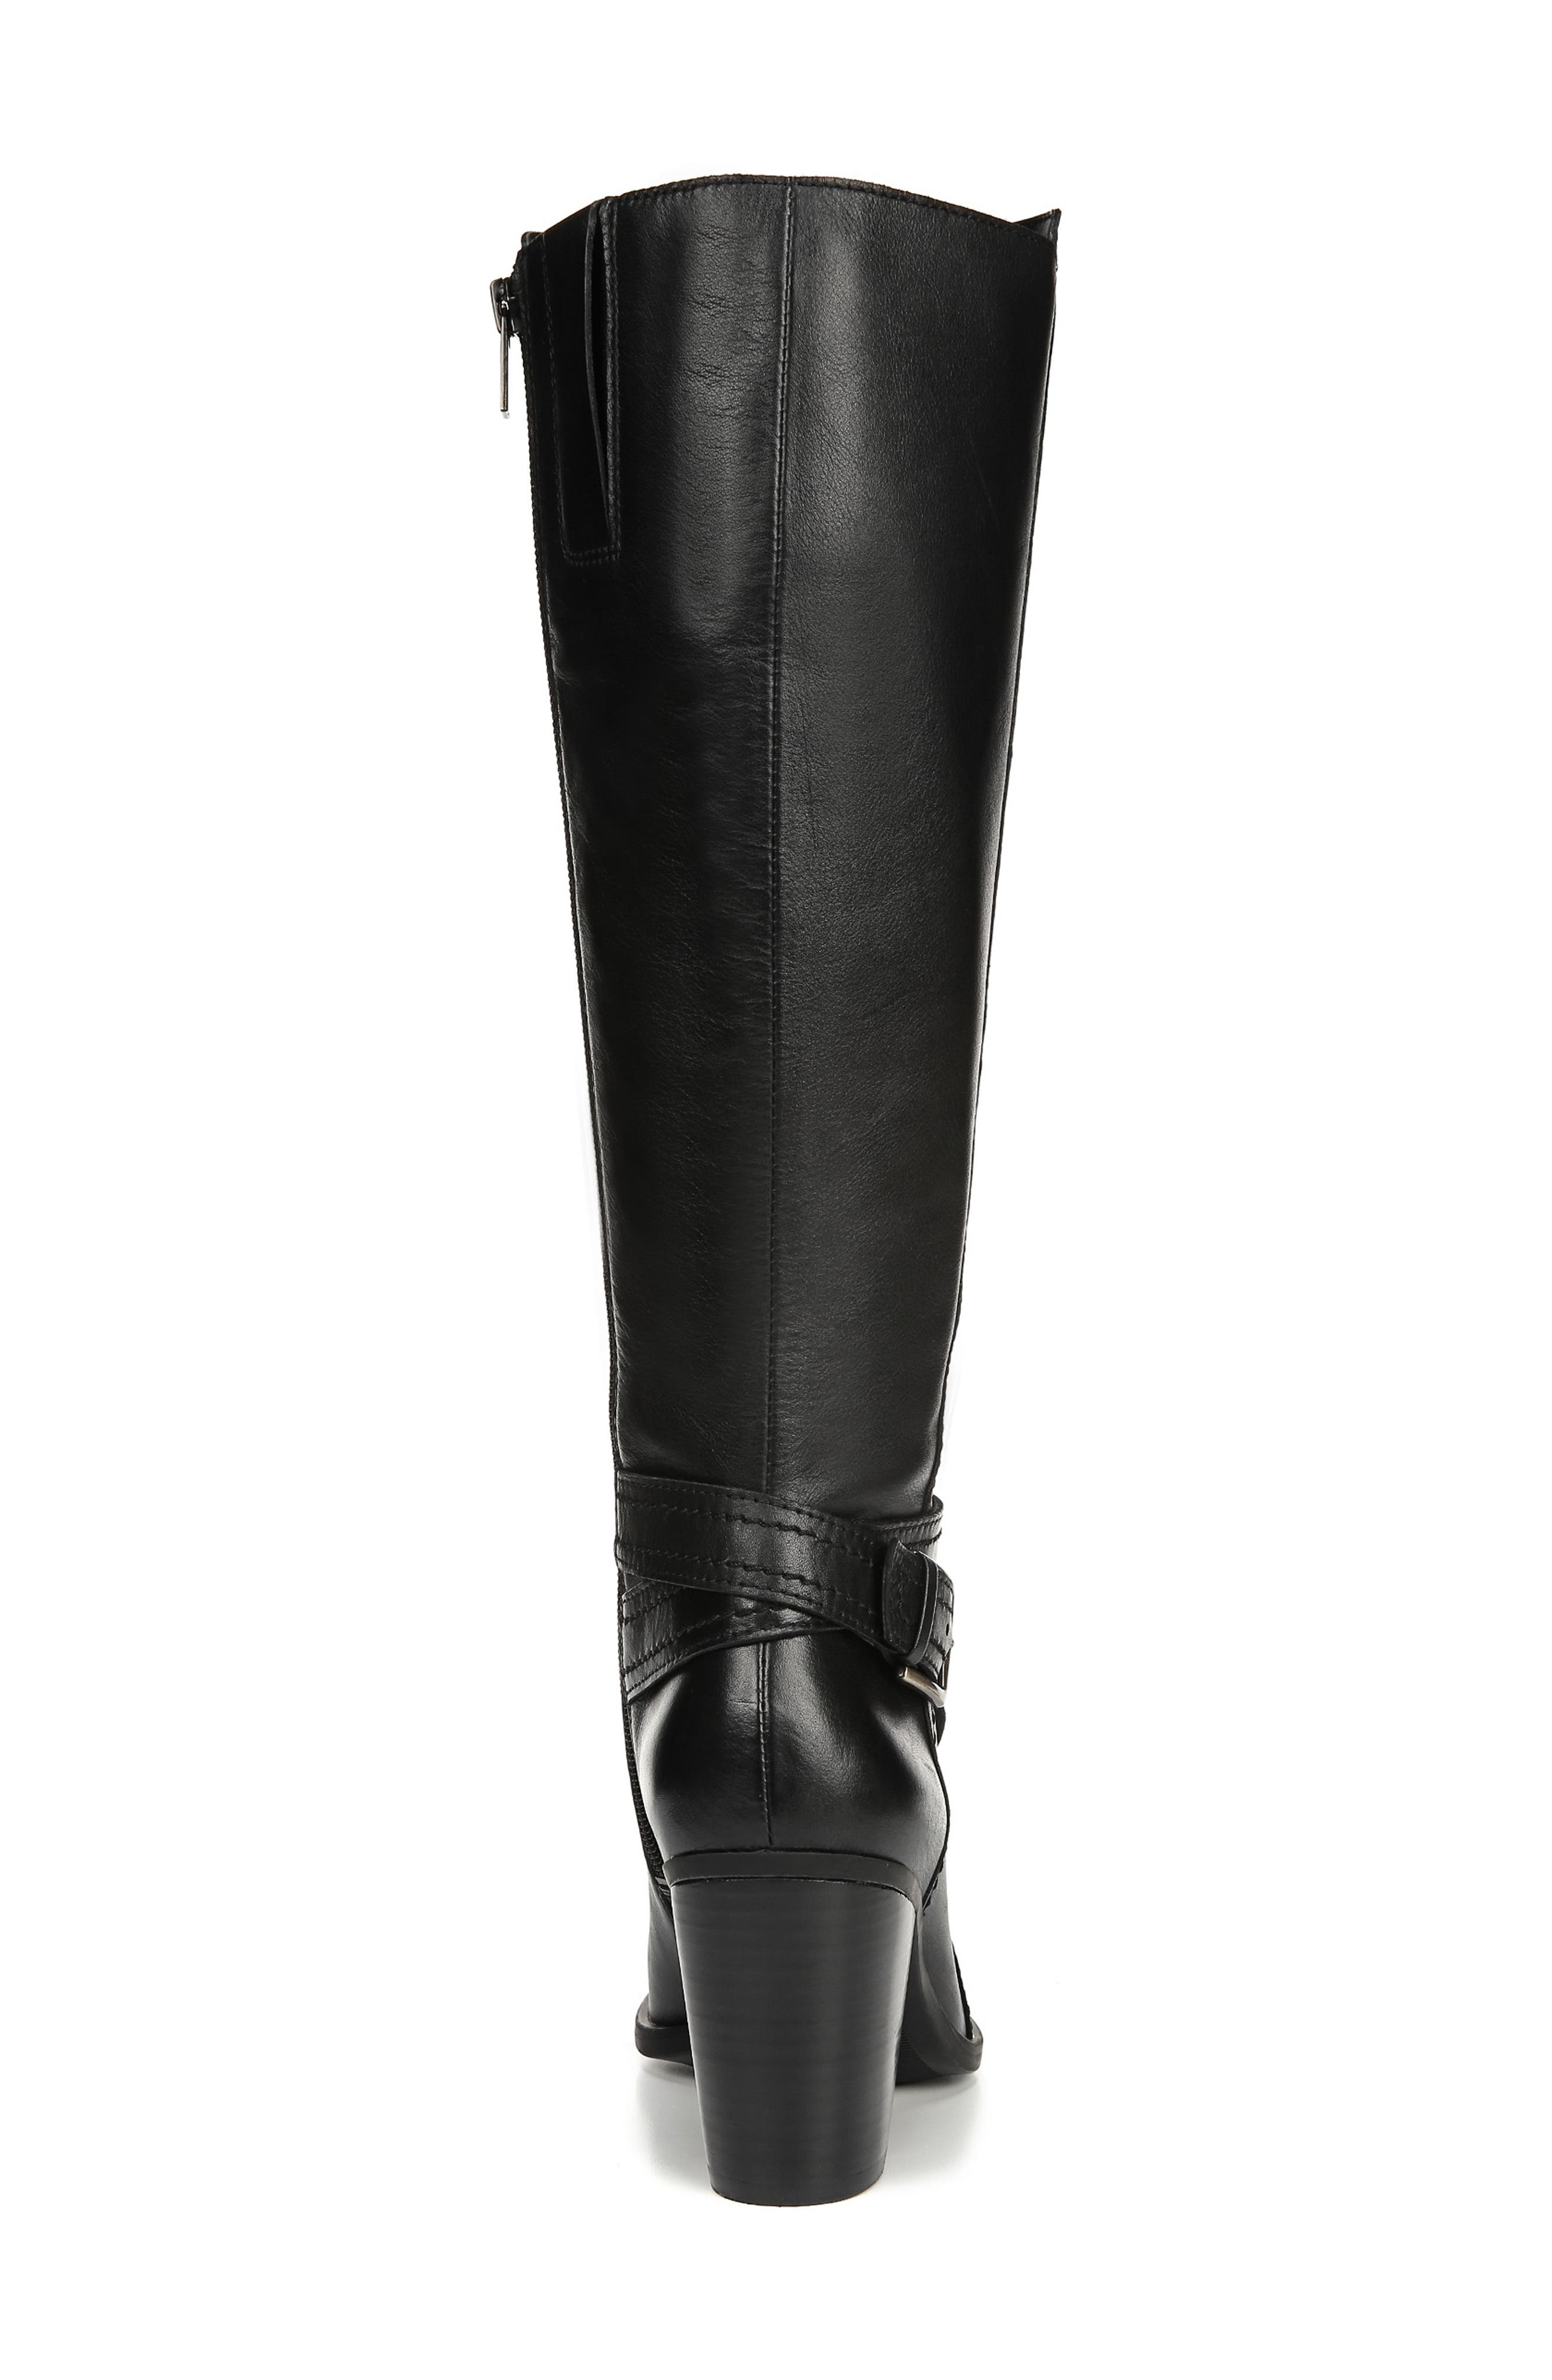 NATURALIZER, Kelsey Knee High Boot, Alternate thumbnail 7, color, BLACK LEATHER